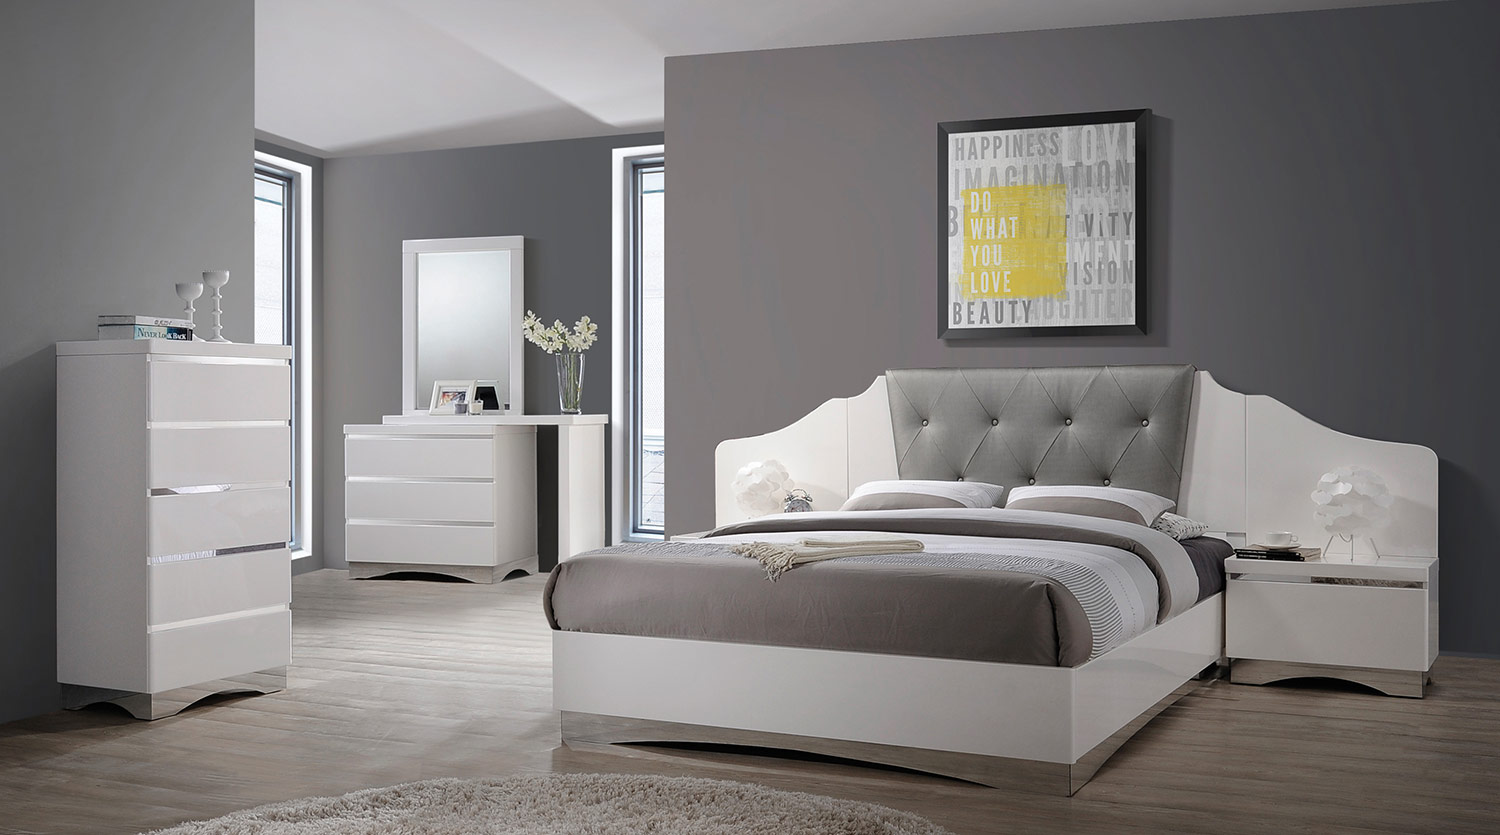 Coaster Alessandro Upholstered Bedroom Set Glossy White BEDROOM SET